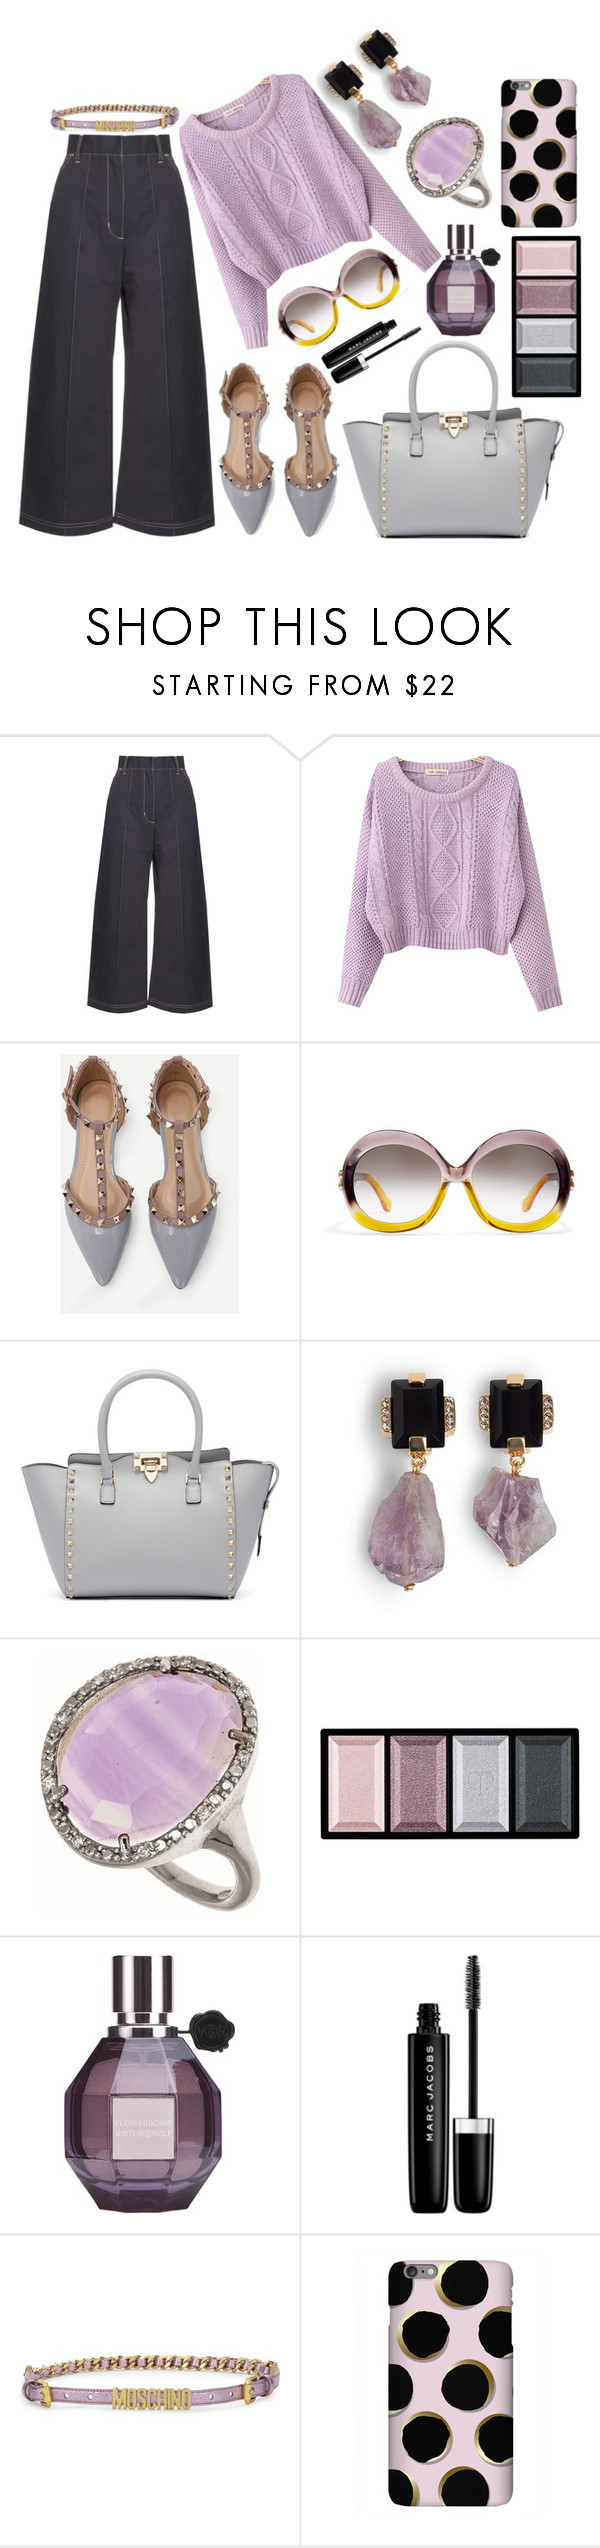 """Crushing on lavender"" by pulseofthematter ❤ liked on Polyvore featuring Wales Bonner, Chicnova Fashion, Valentino, Marni, Phillip Gavriel, Clé de Peau Beauté, Viktor & Rolf, Marc Jacobs and Moschino"